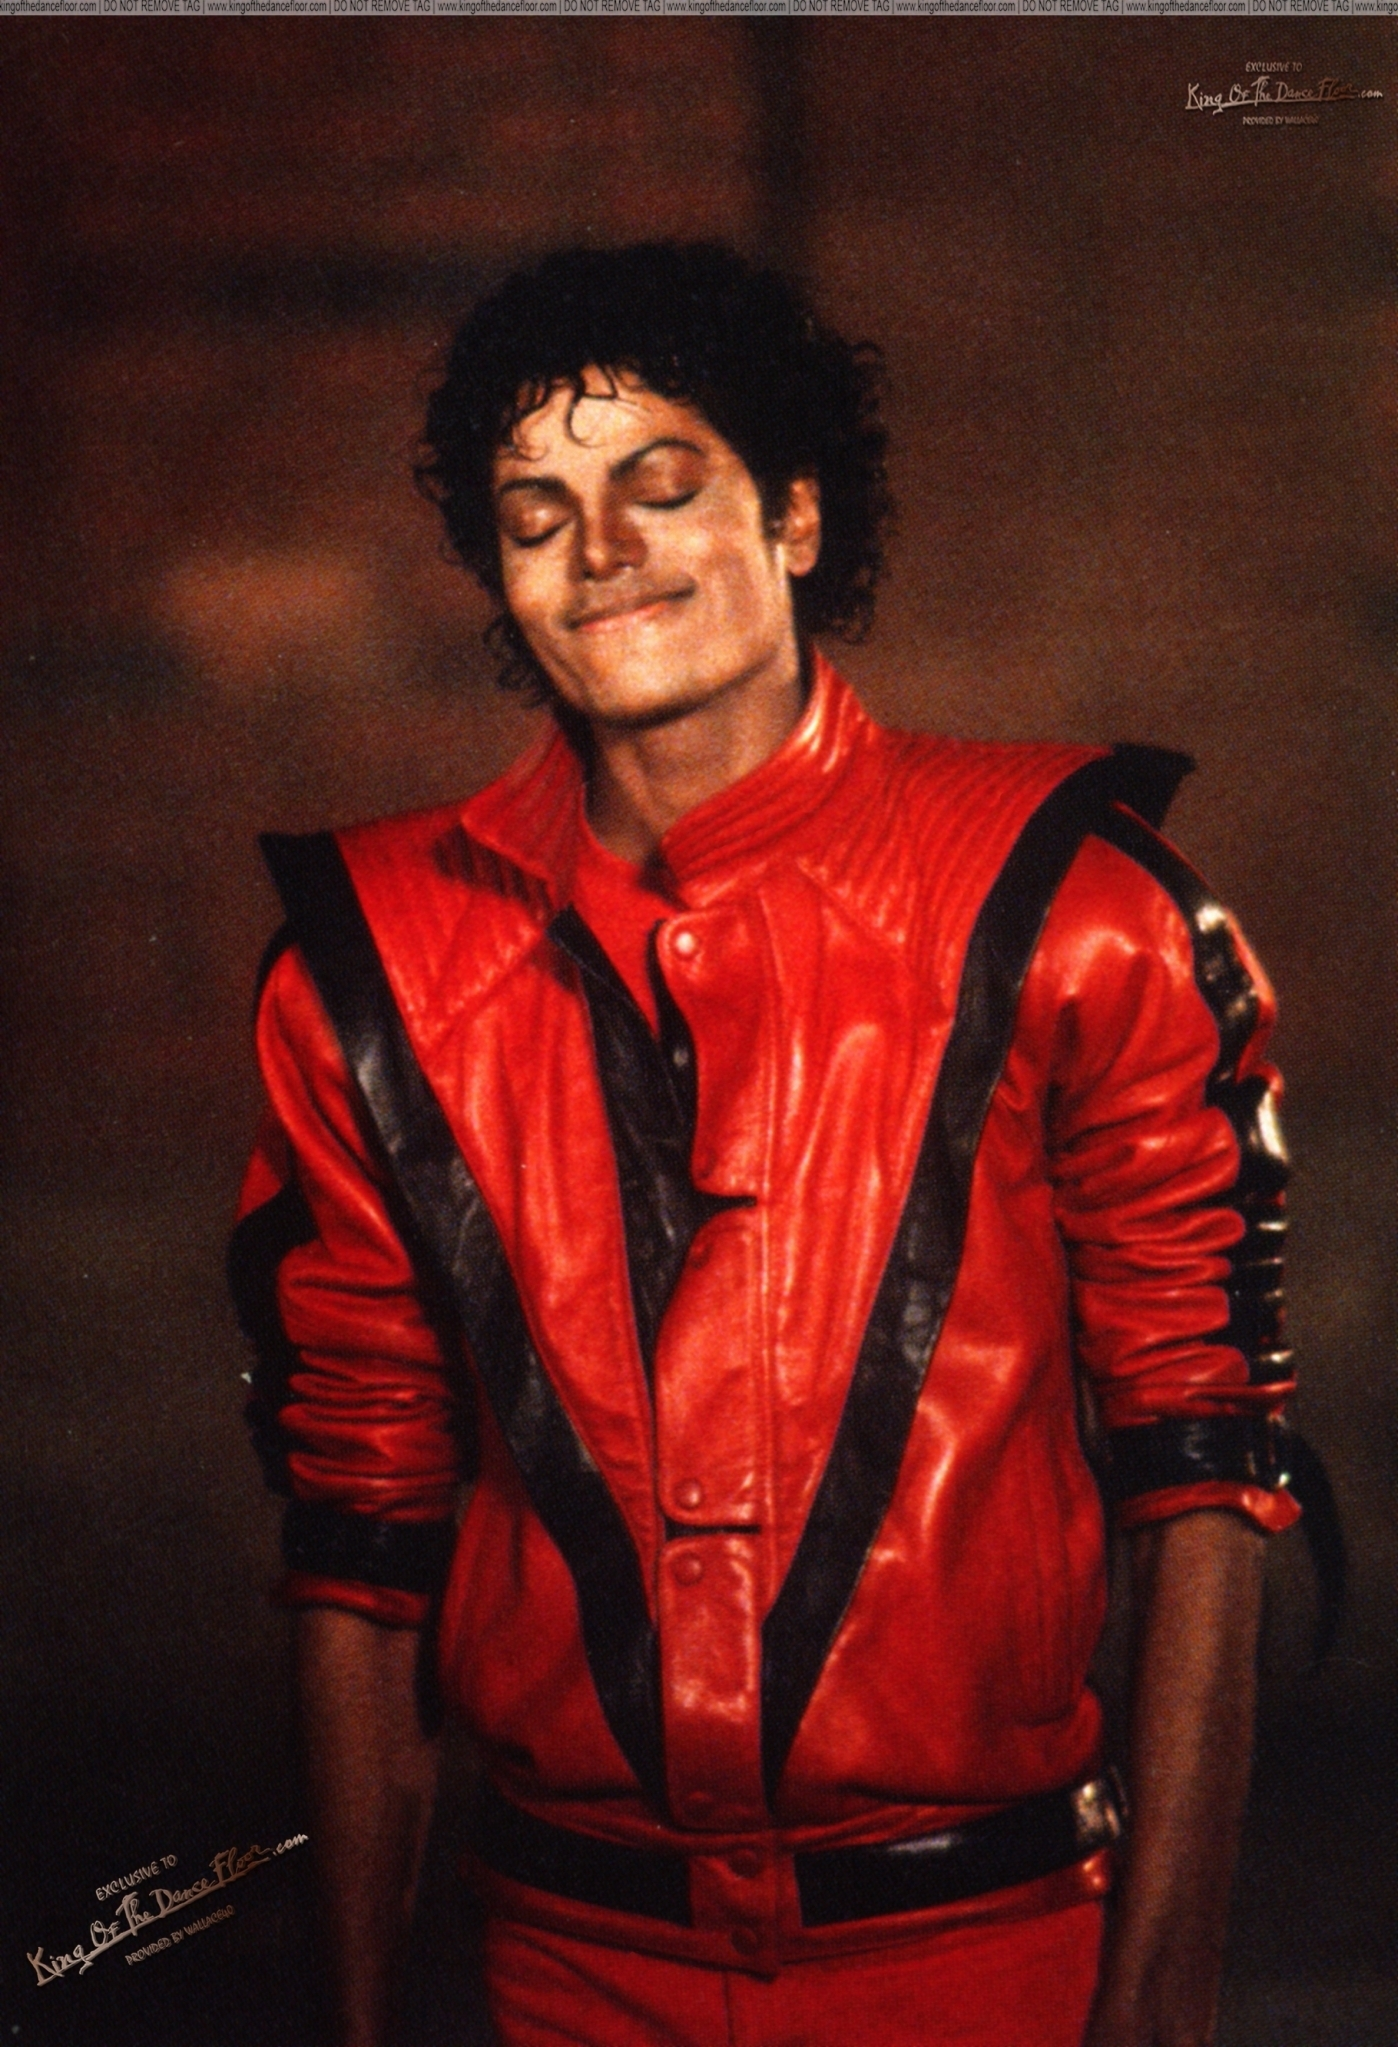 The Thriller Era Images Mj Hd Wallpaper And Background